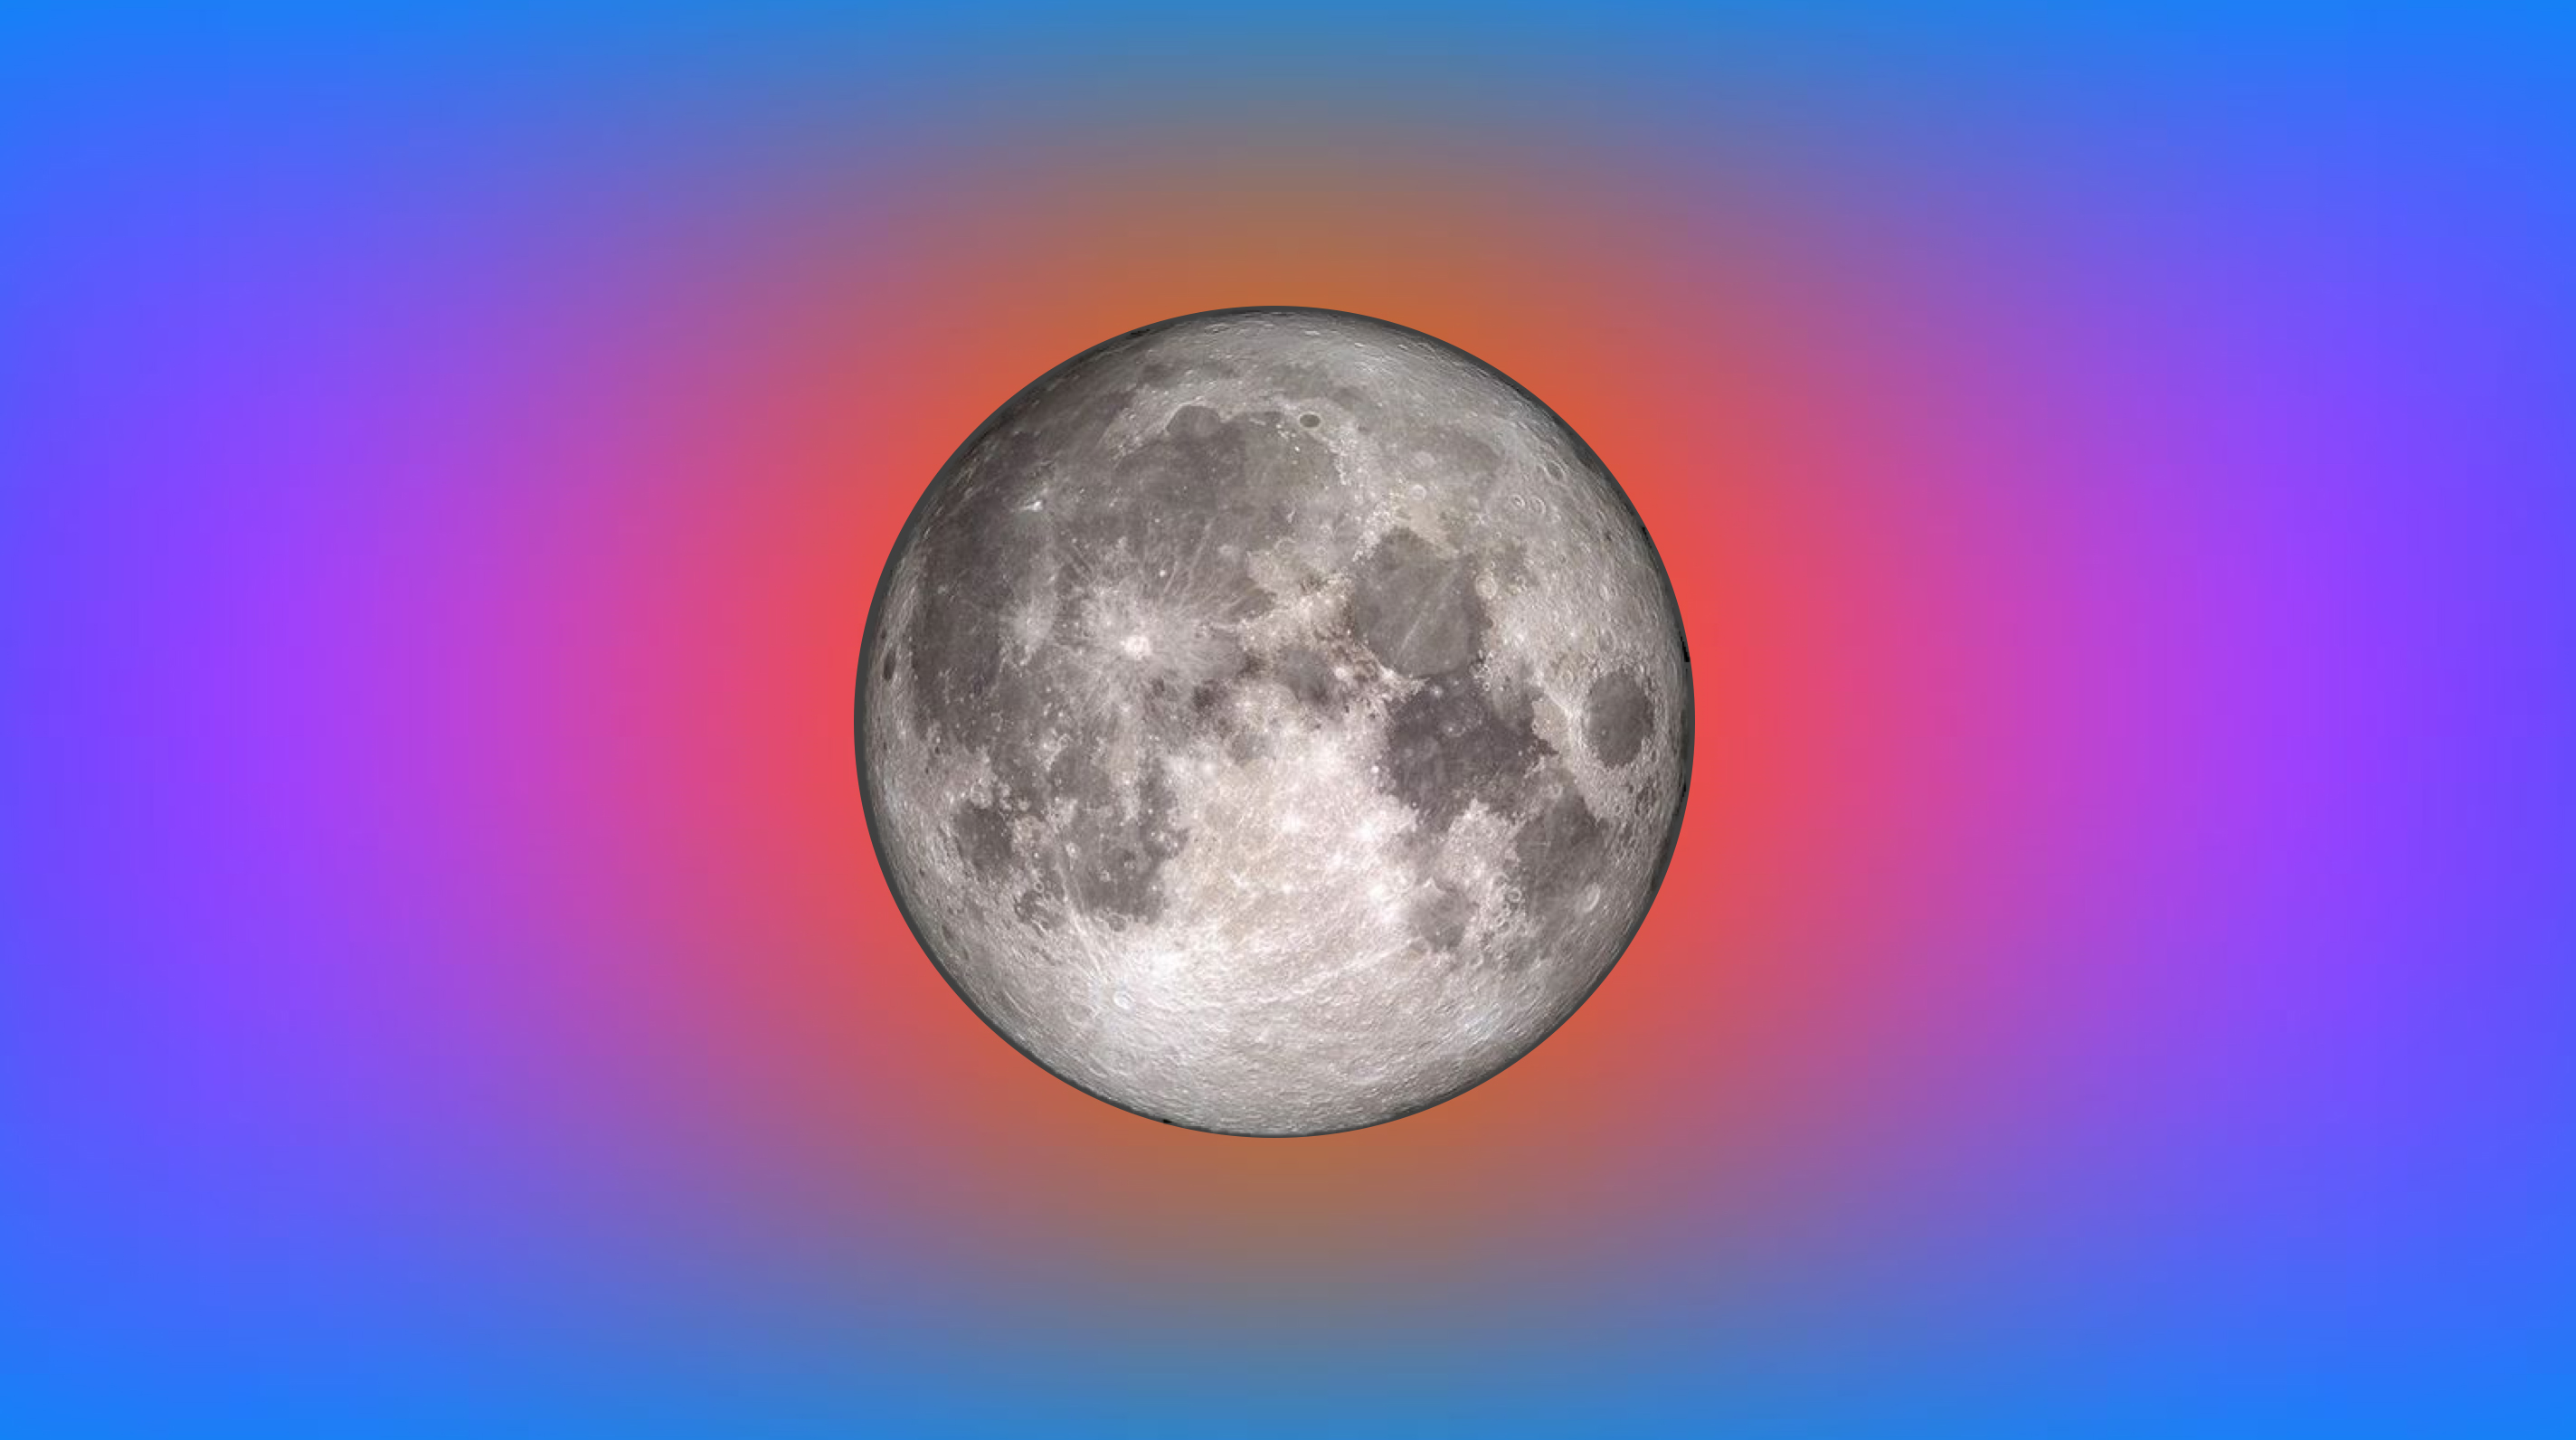 The Astrological Witchcraft Rule: Blue Moon is the Second Full Moon in a Zodiac Sign